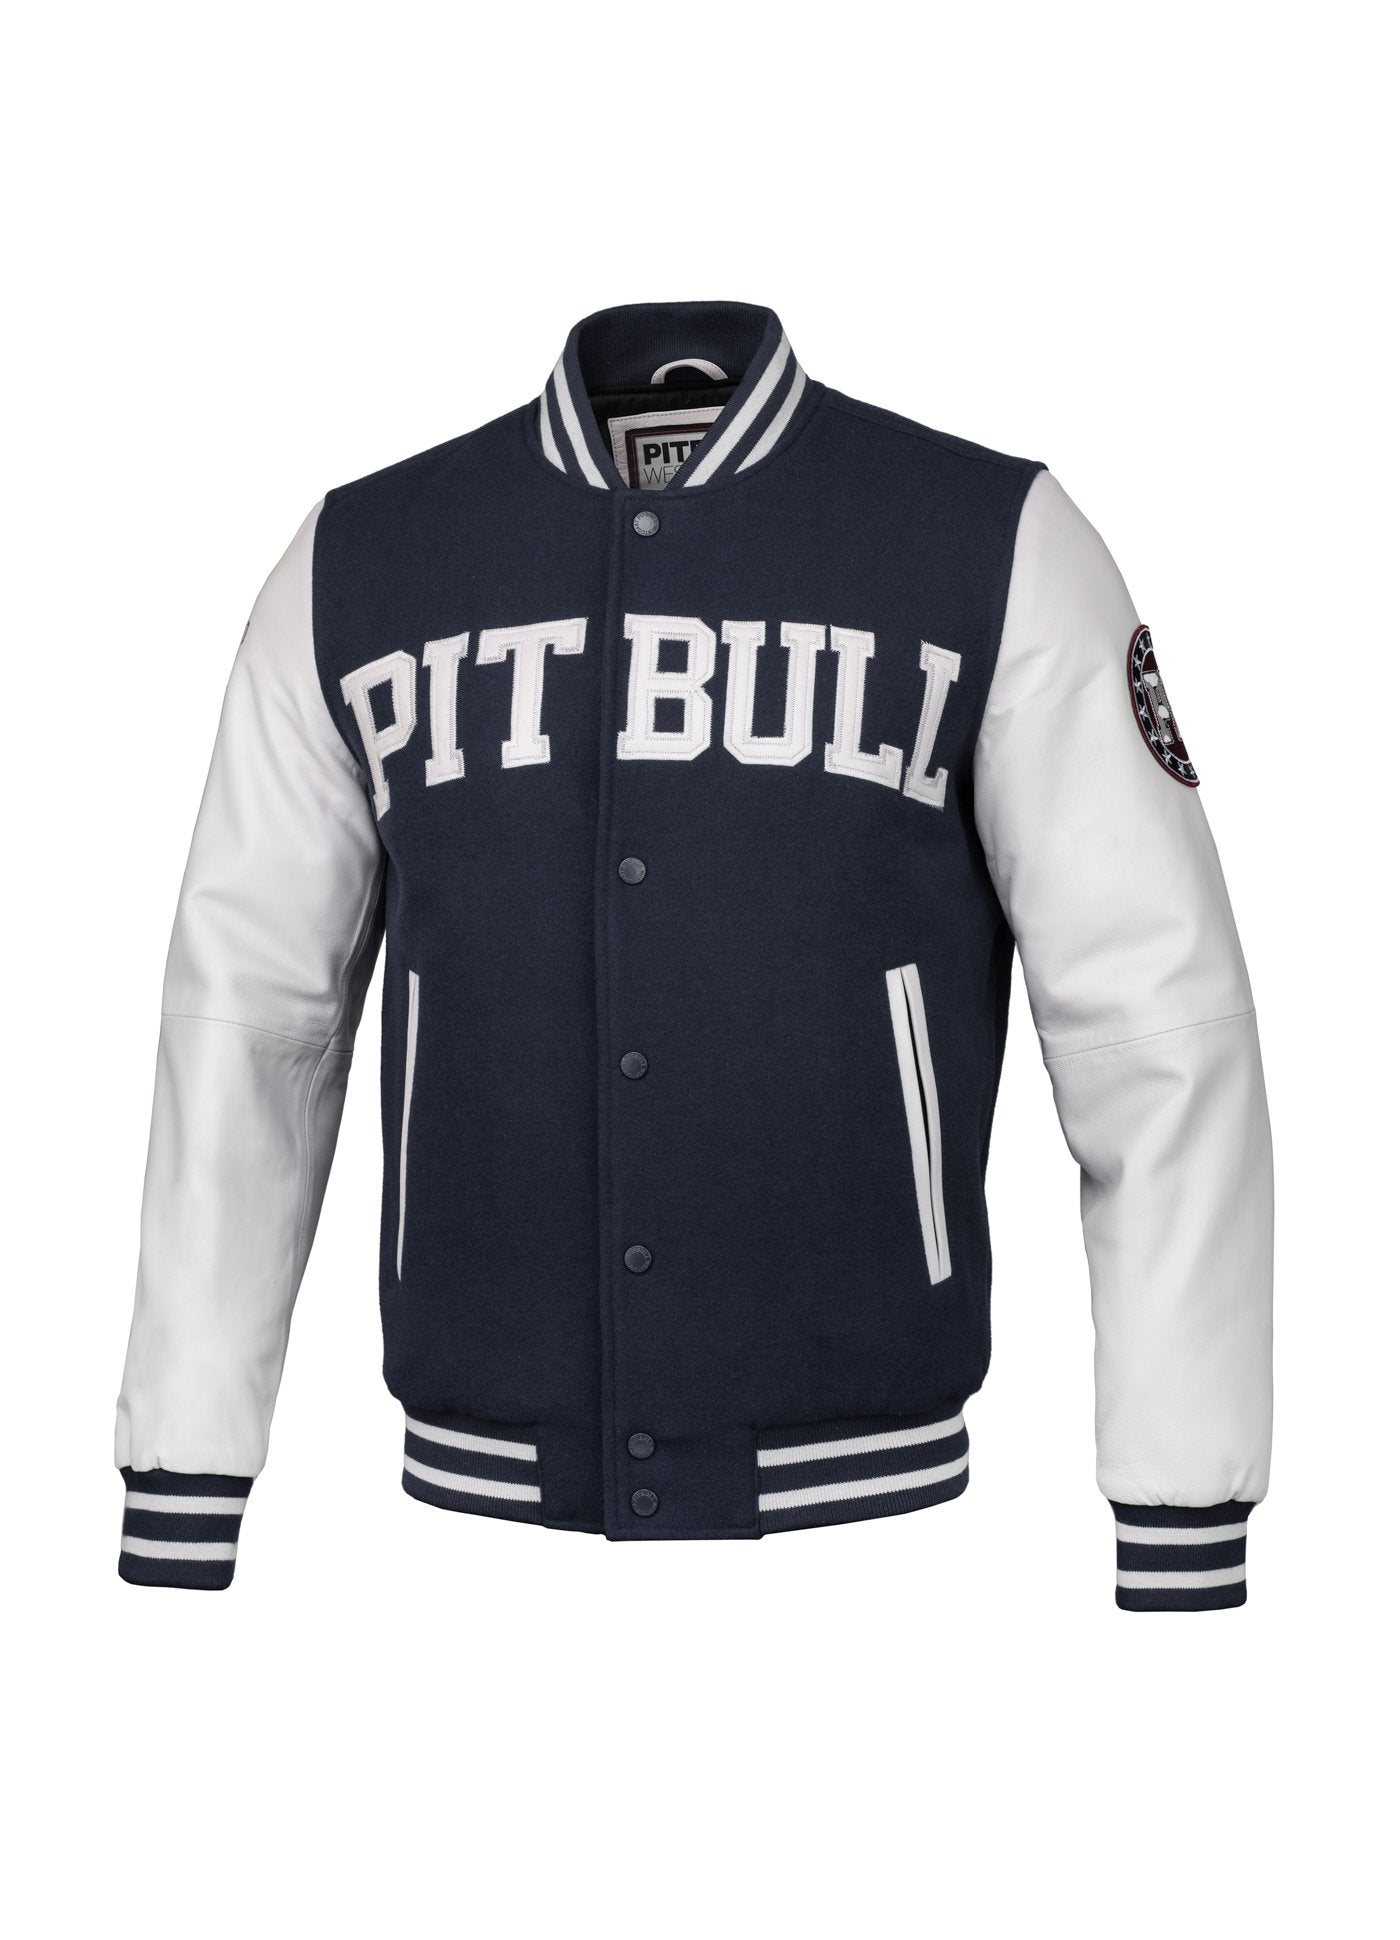 pitbull west coast jacket fall winter 2019 melton wilson